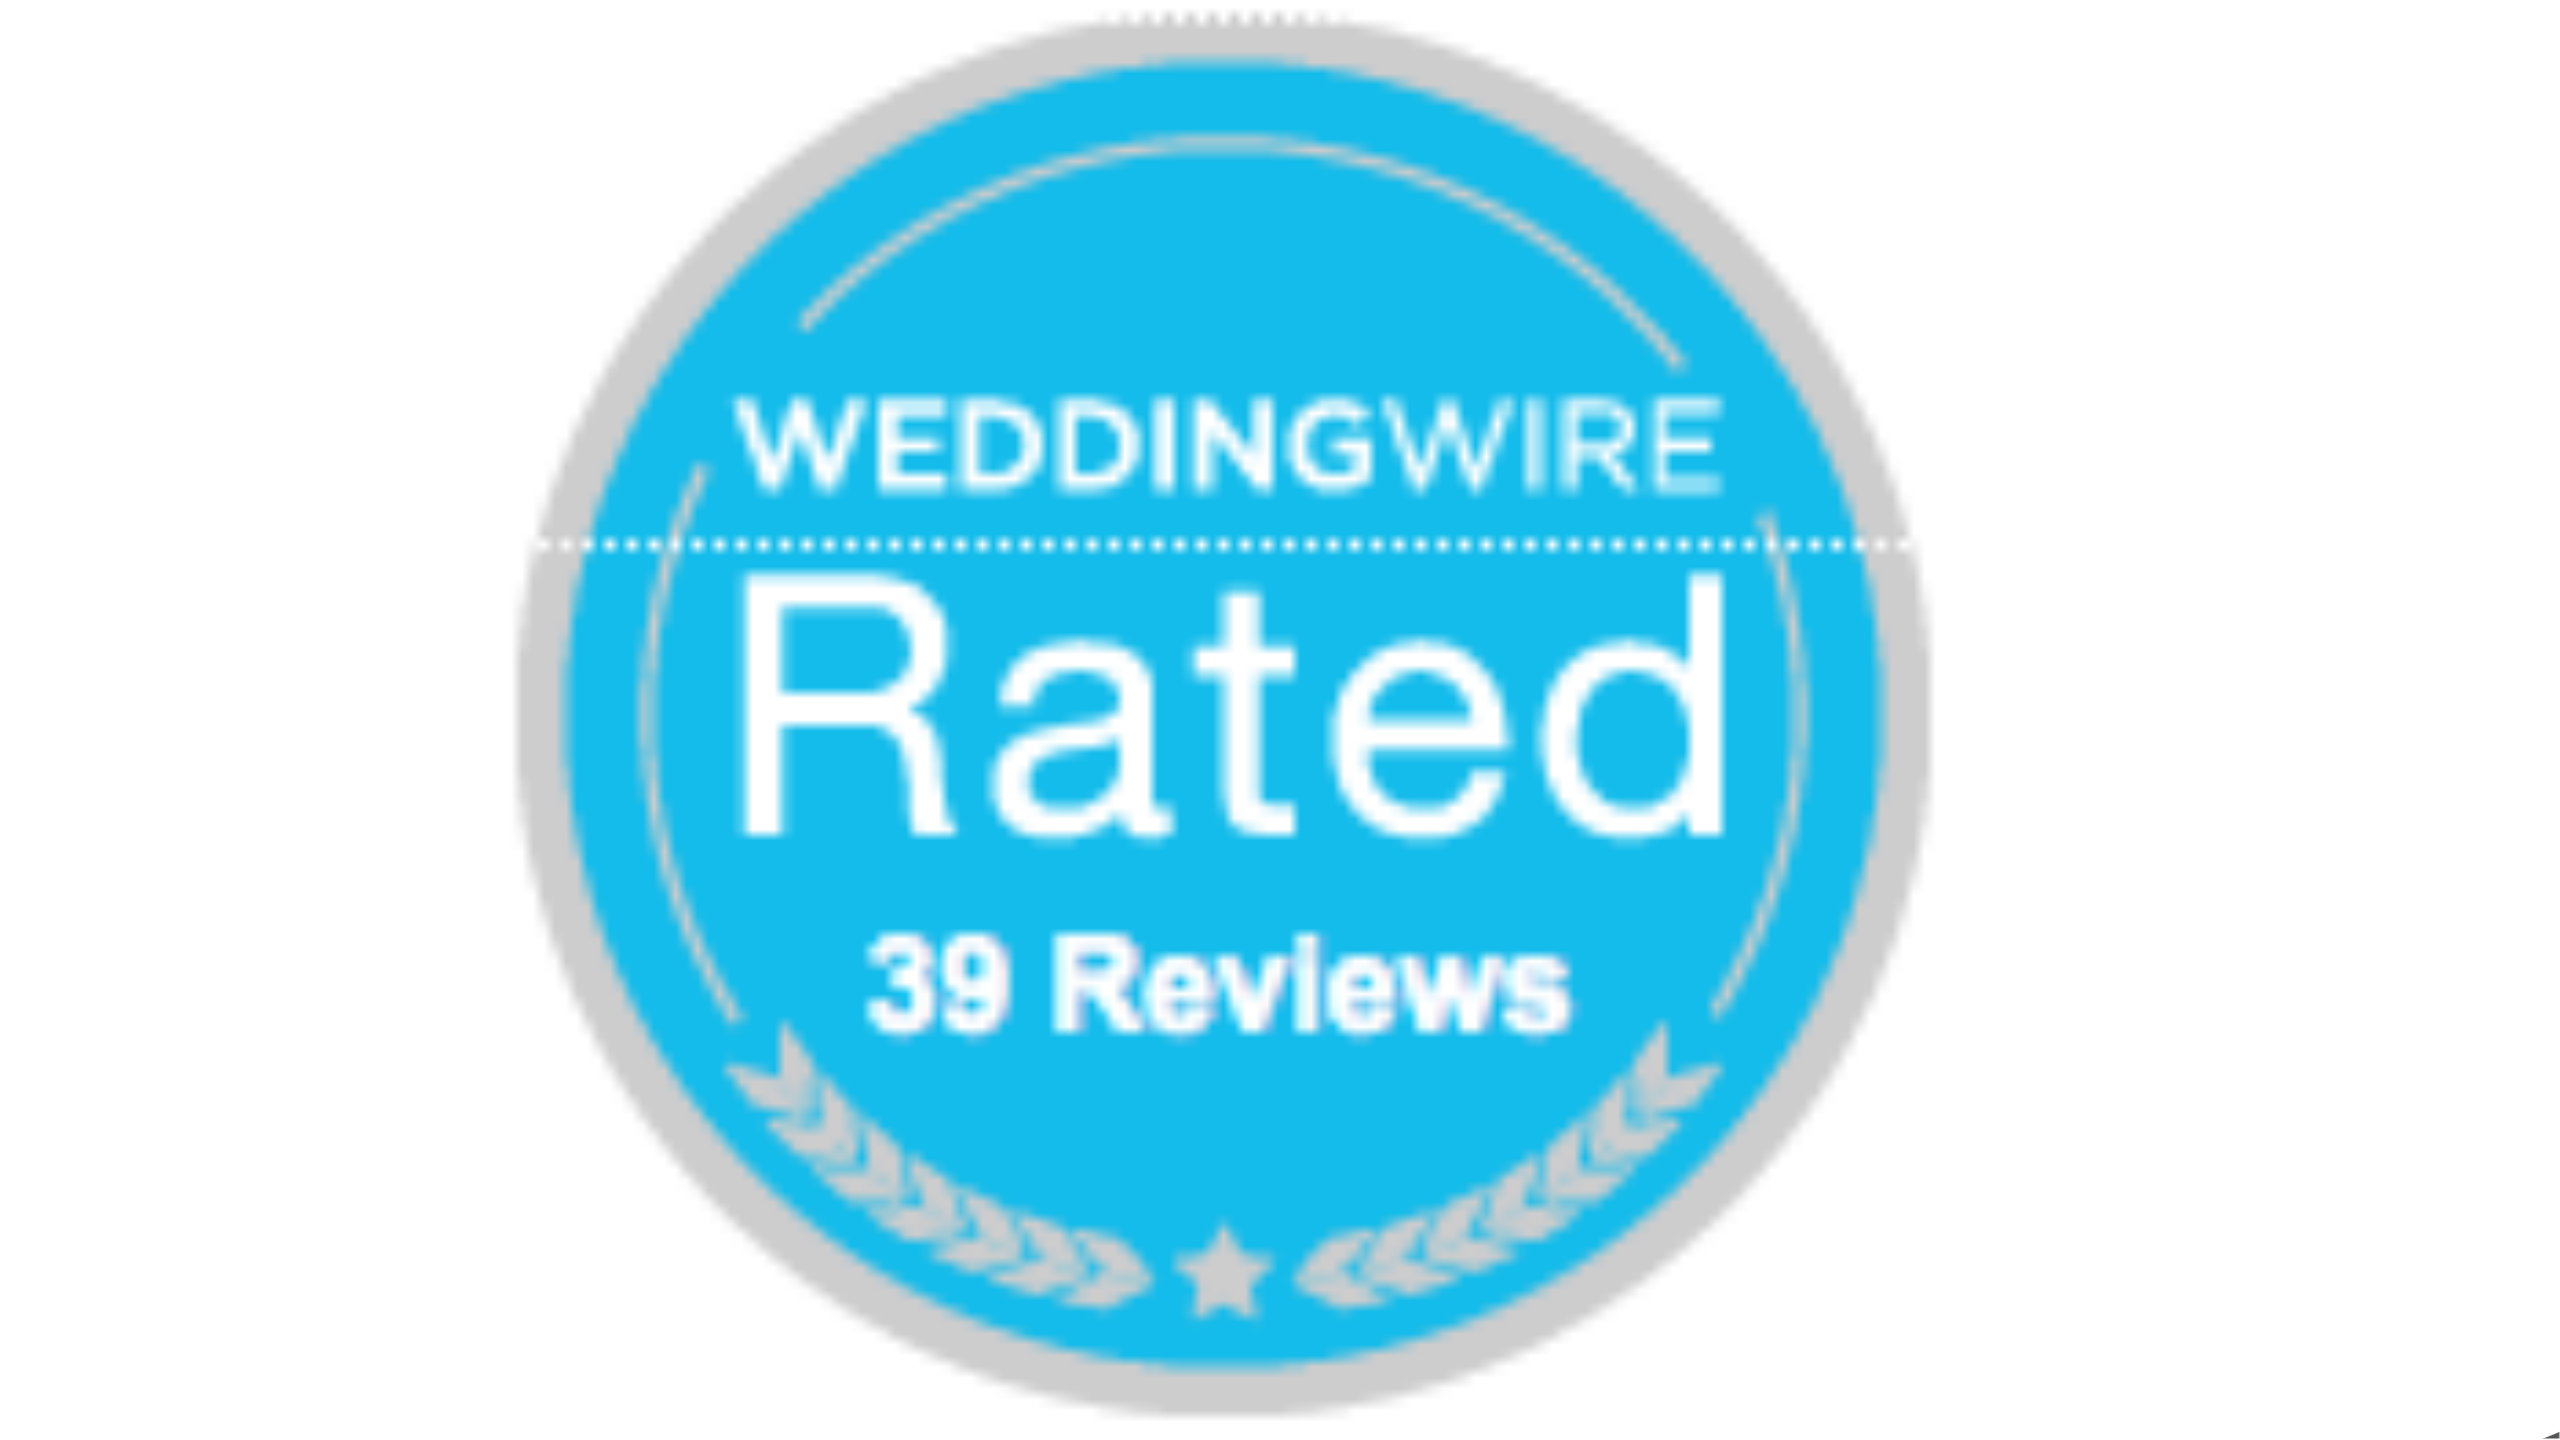 Reviews & Awards